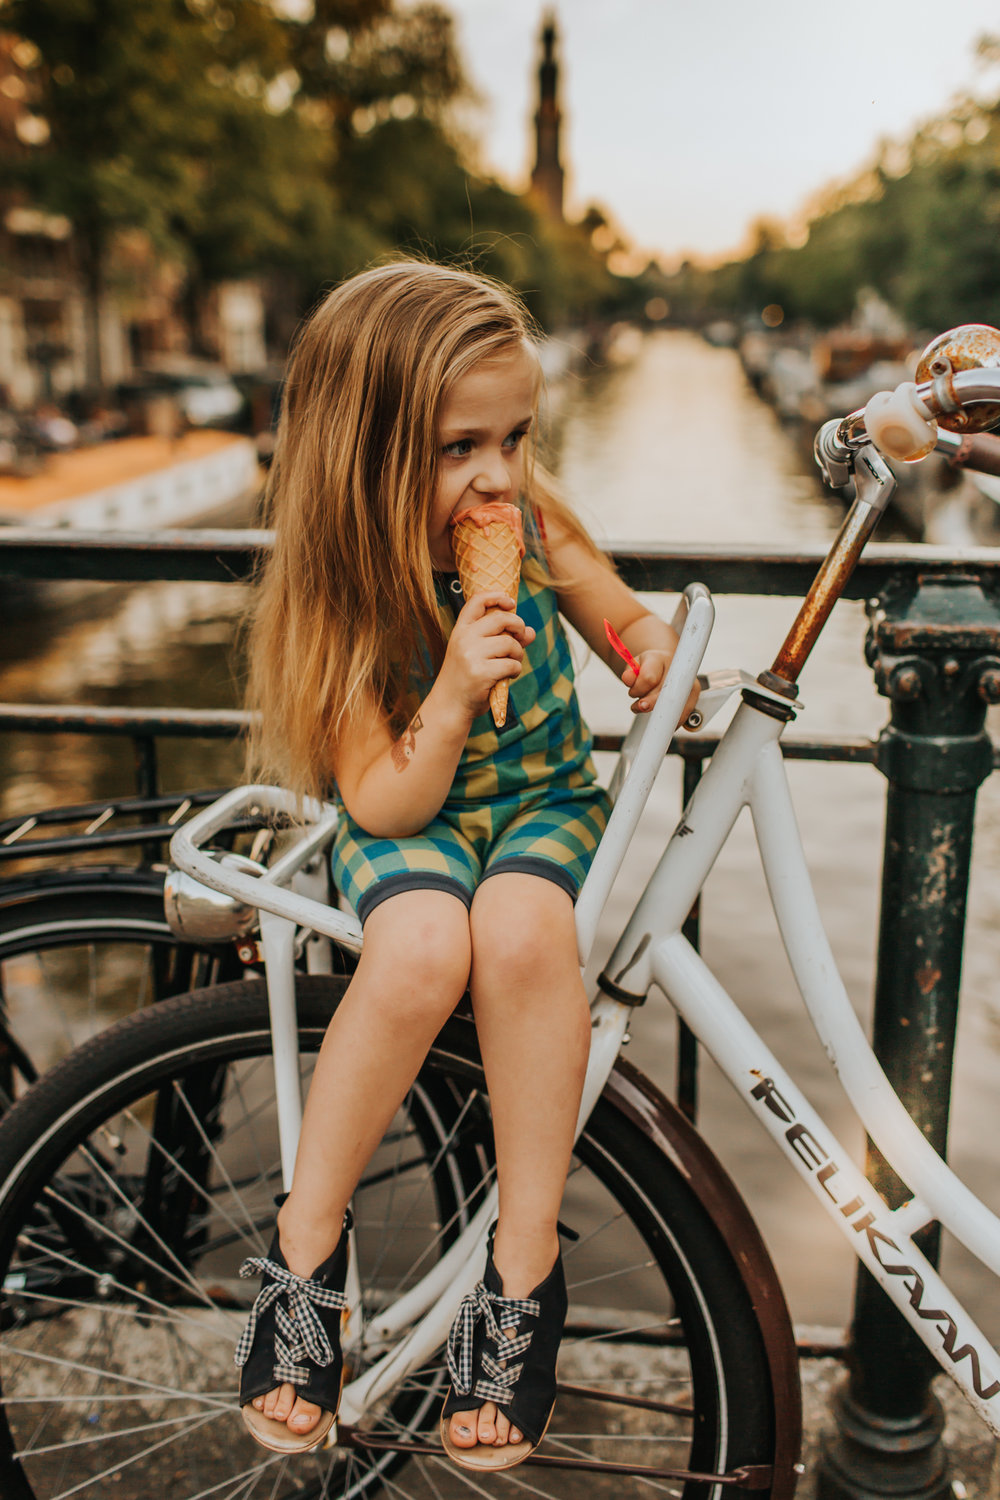 icecream-prinsengracht95.jpg